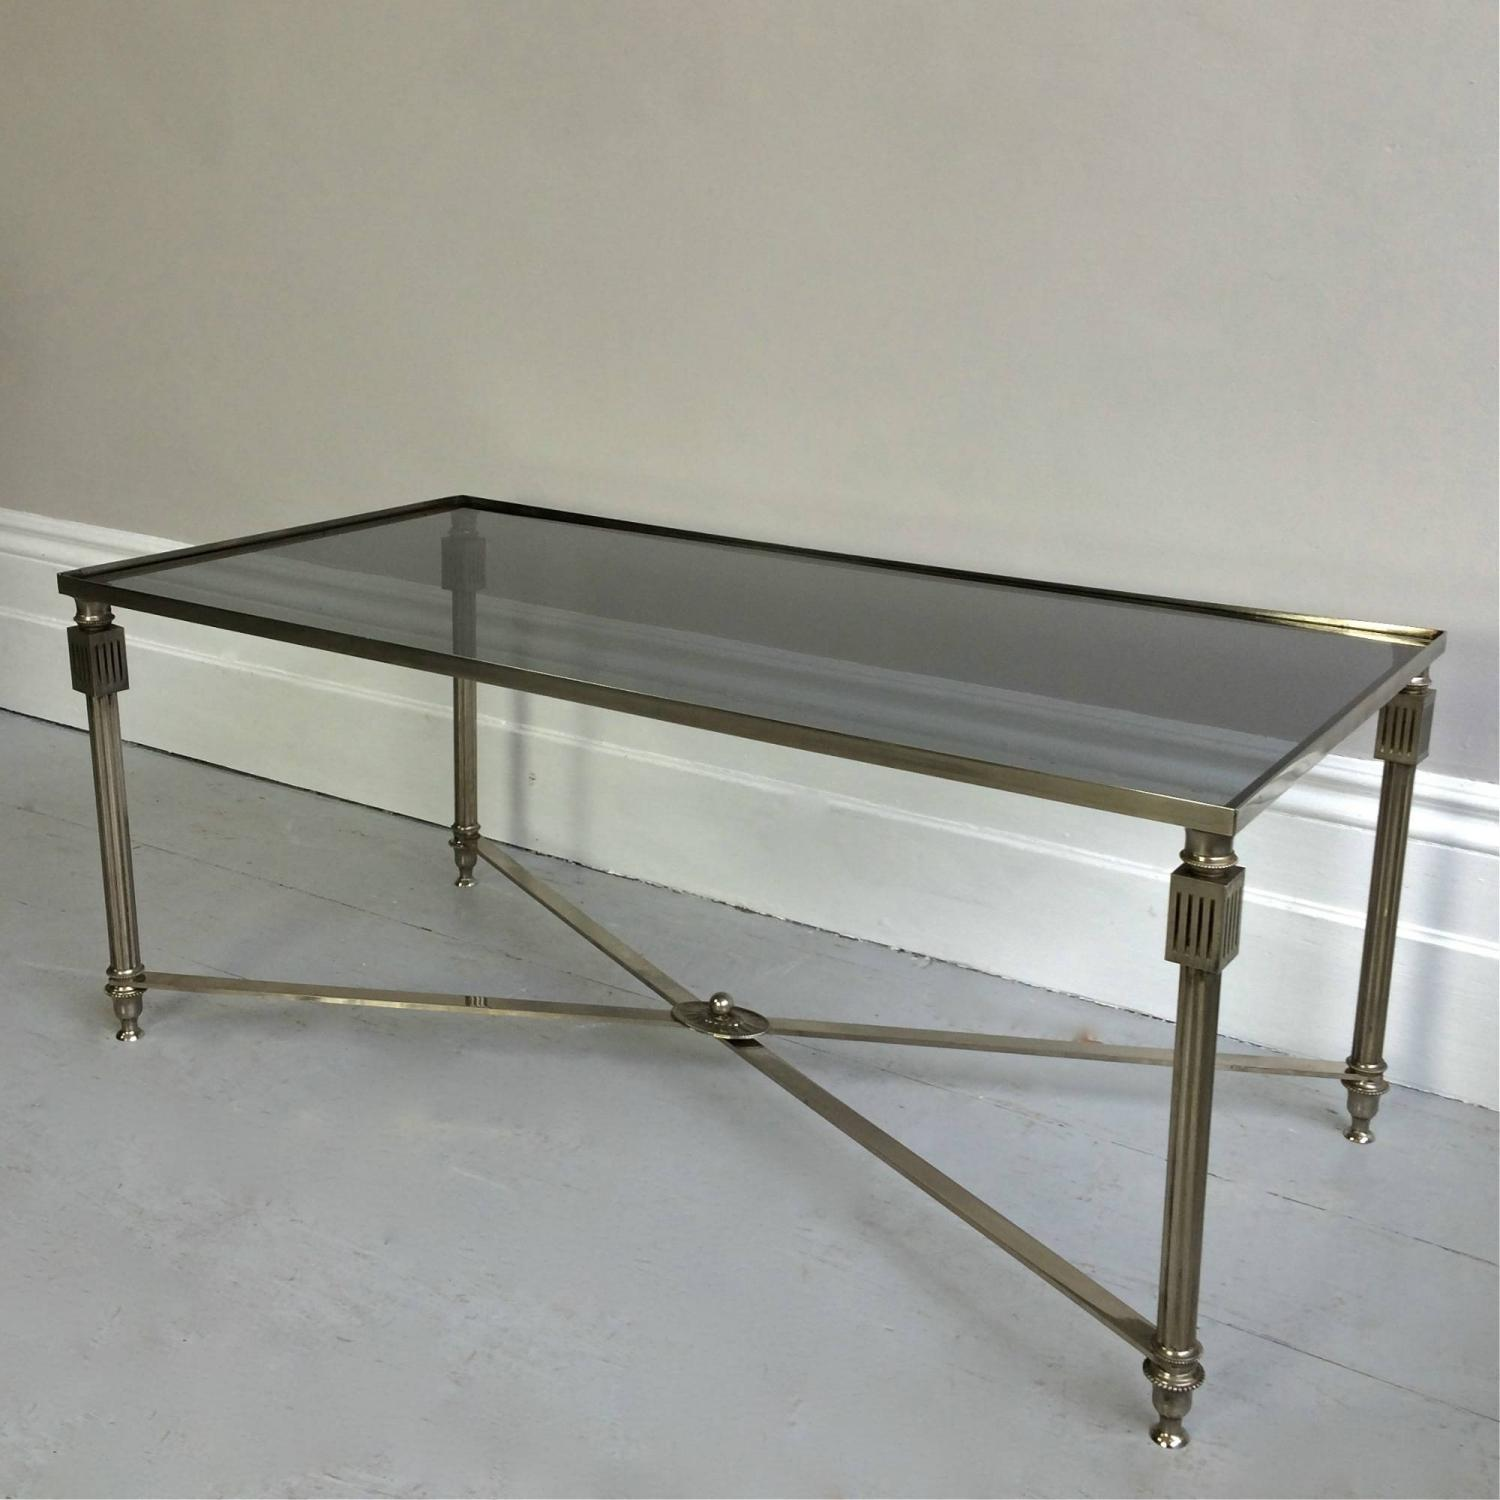 VERY FINE VINTAGE FRENCH NICKEL COFFEE TABLE